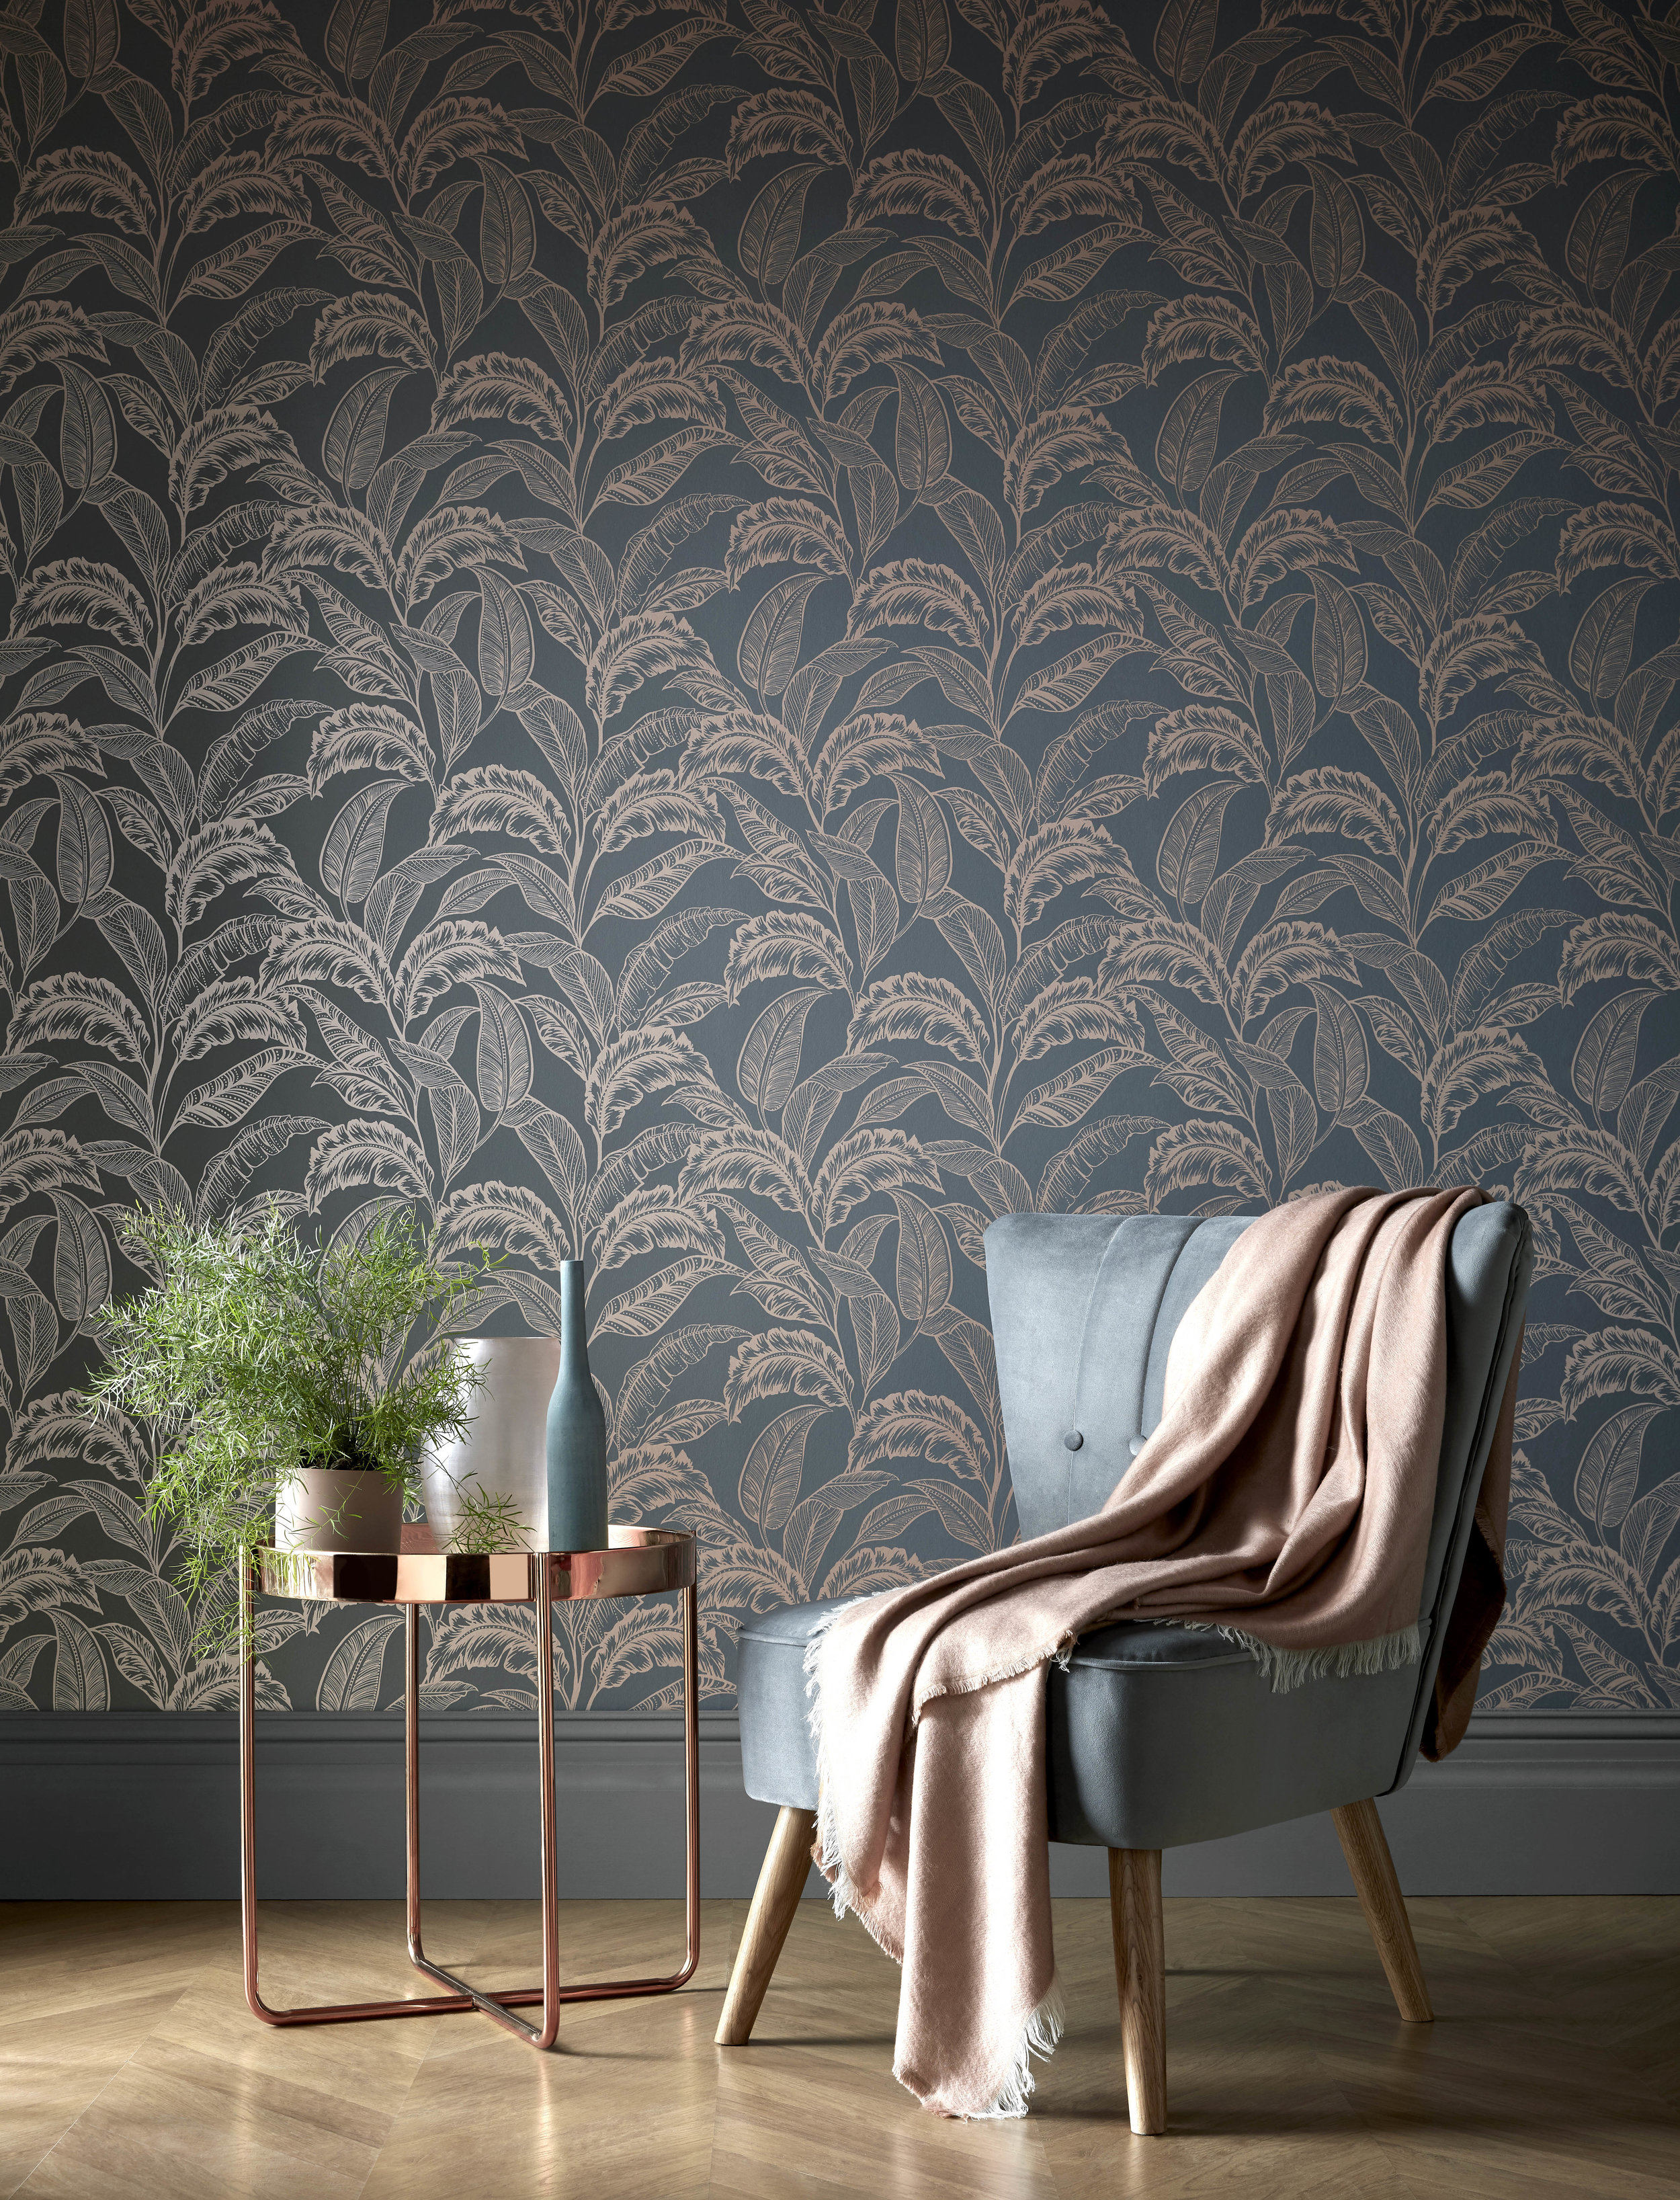 Accessorize Mozambique Wallpaper - Grey Rose Gold copy.jpg